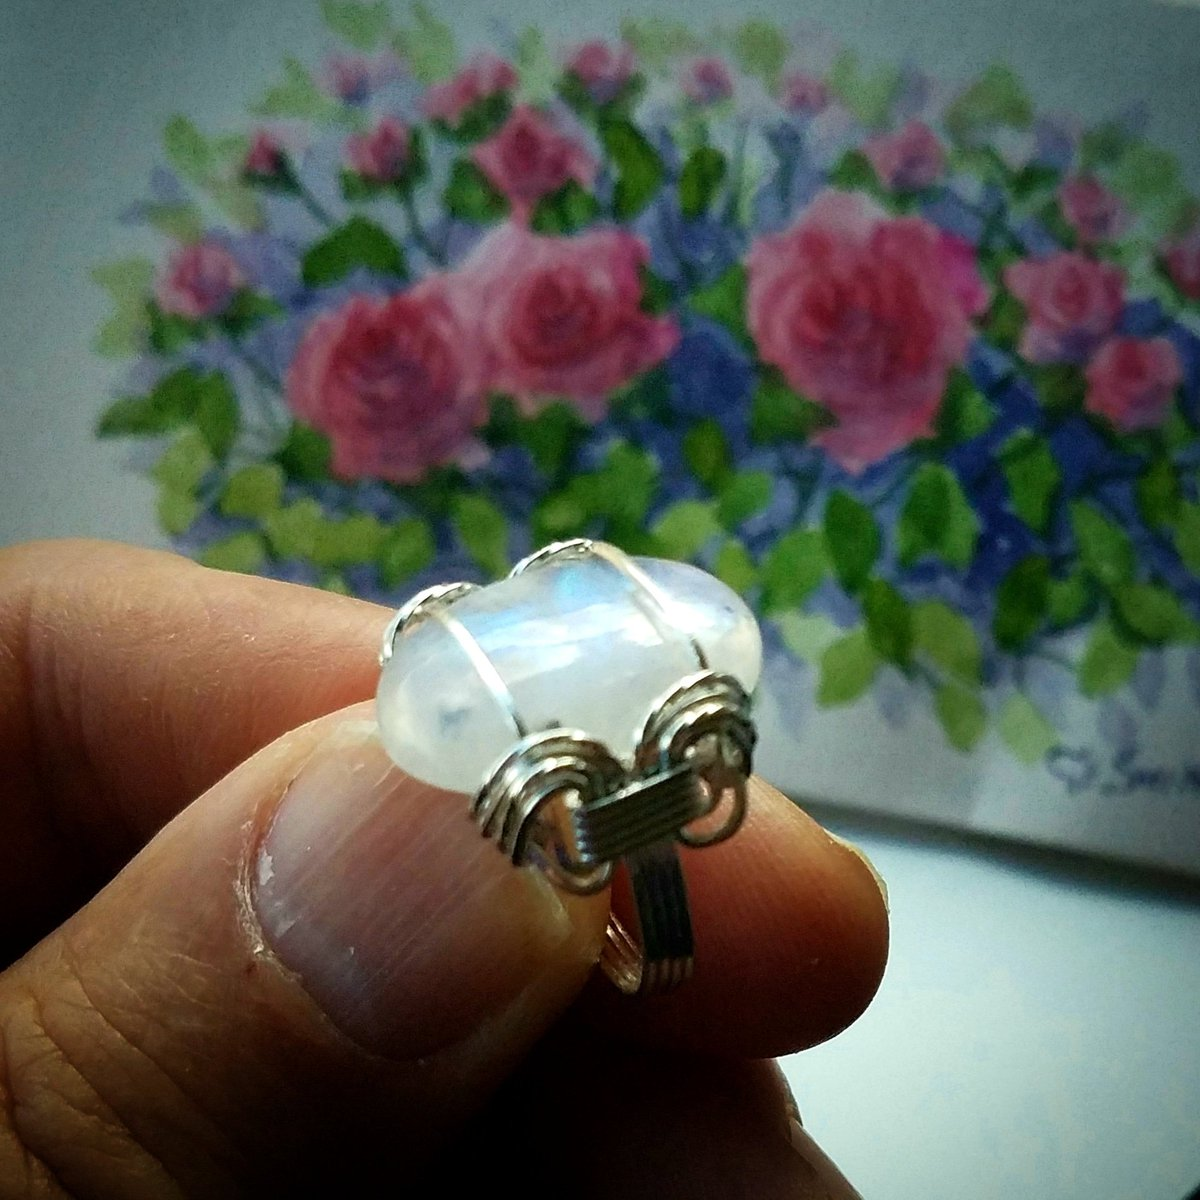 FREE SHIPPING White With Blue Flash Moonstone Ring Wire Wrapped Jewelry Handmade in SIlver  https:// etsy.me/2FrtrJt  &nbsp;   #etsy #jewelry #handmade #fashion #handmadejewelry #etsymntt #bohemian #etsygifts<br>http://pic.twitter.com/7ktZj6CezY